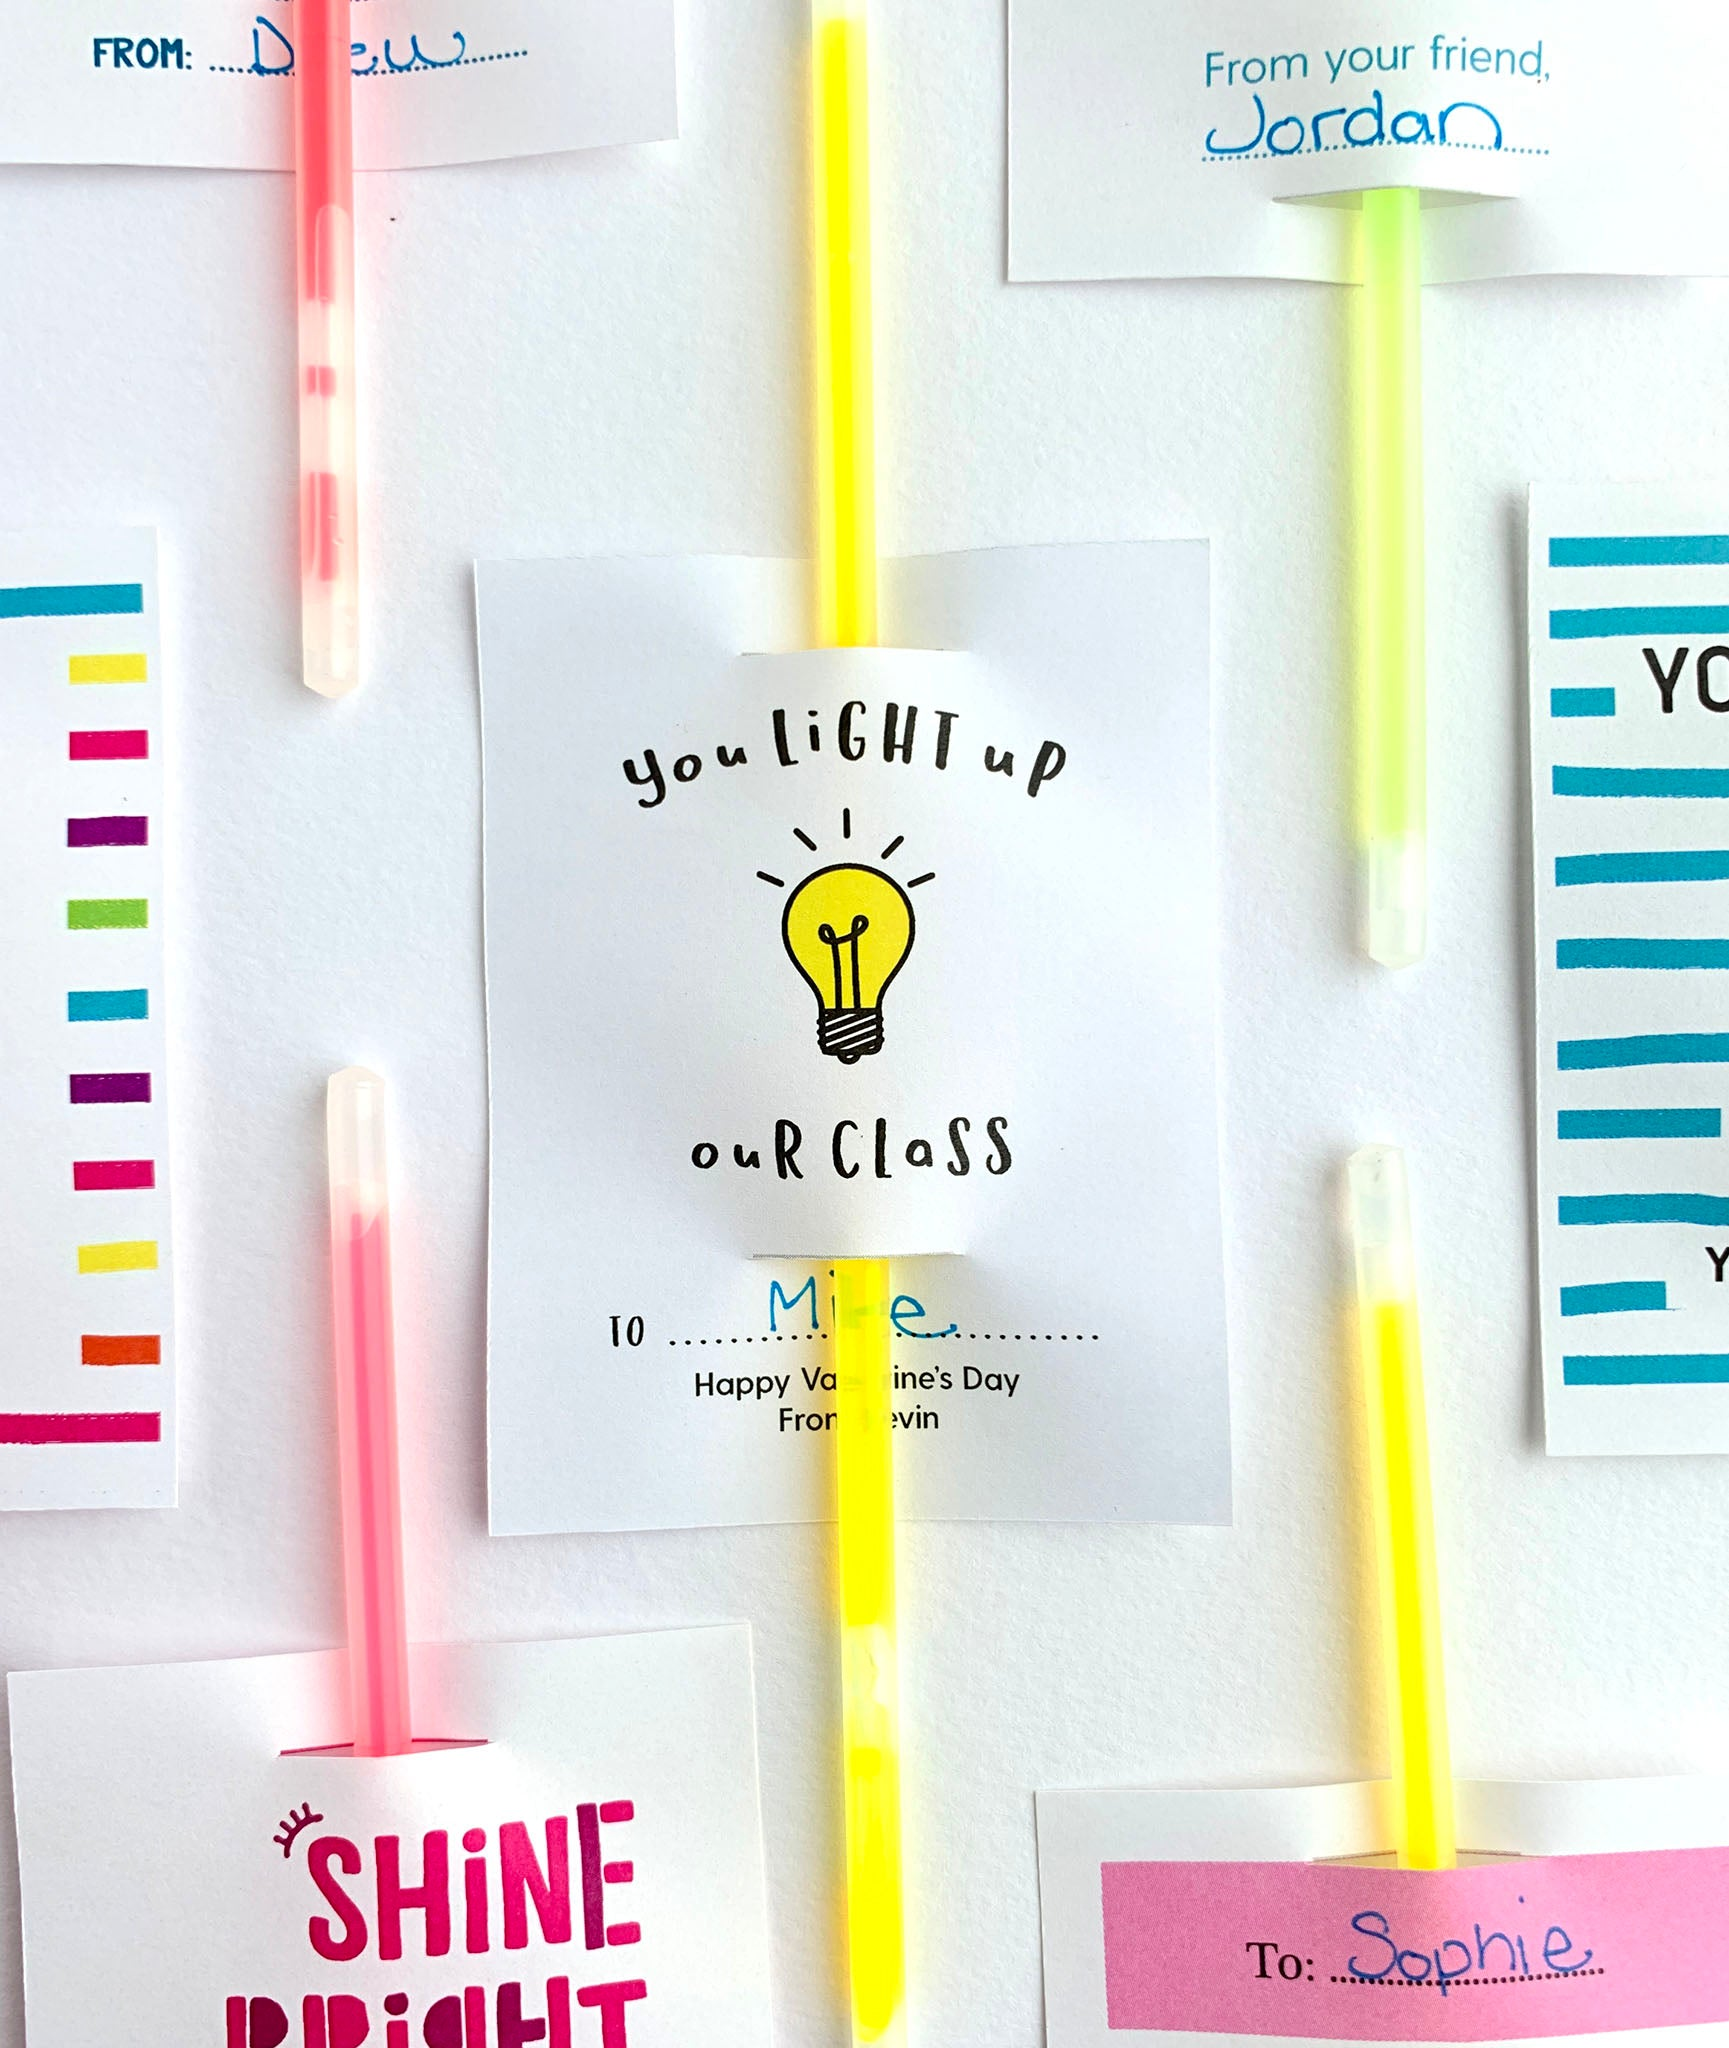 Printable You Light Up Our Class Valentines Day Glow Stick Cards - Invited Too